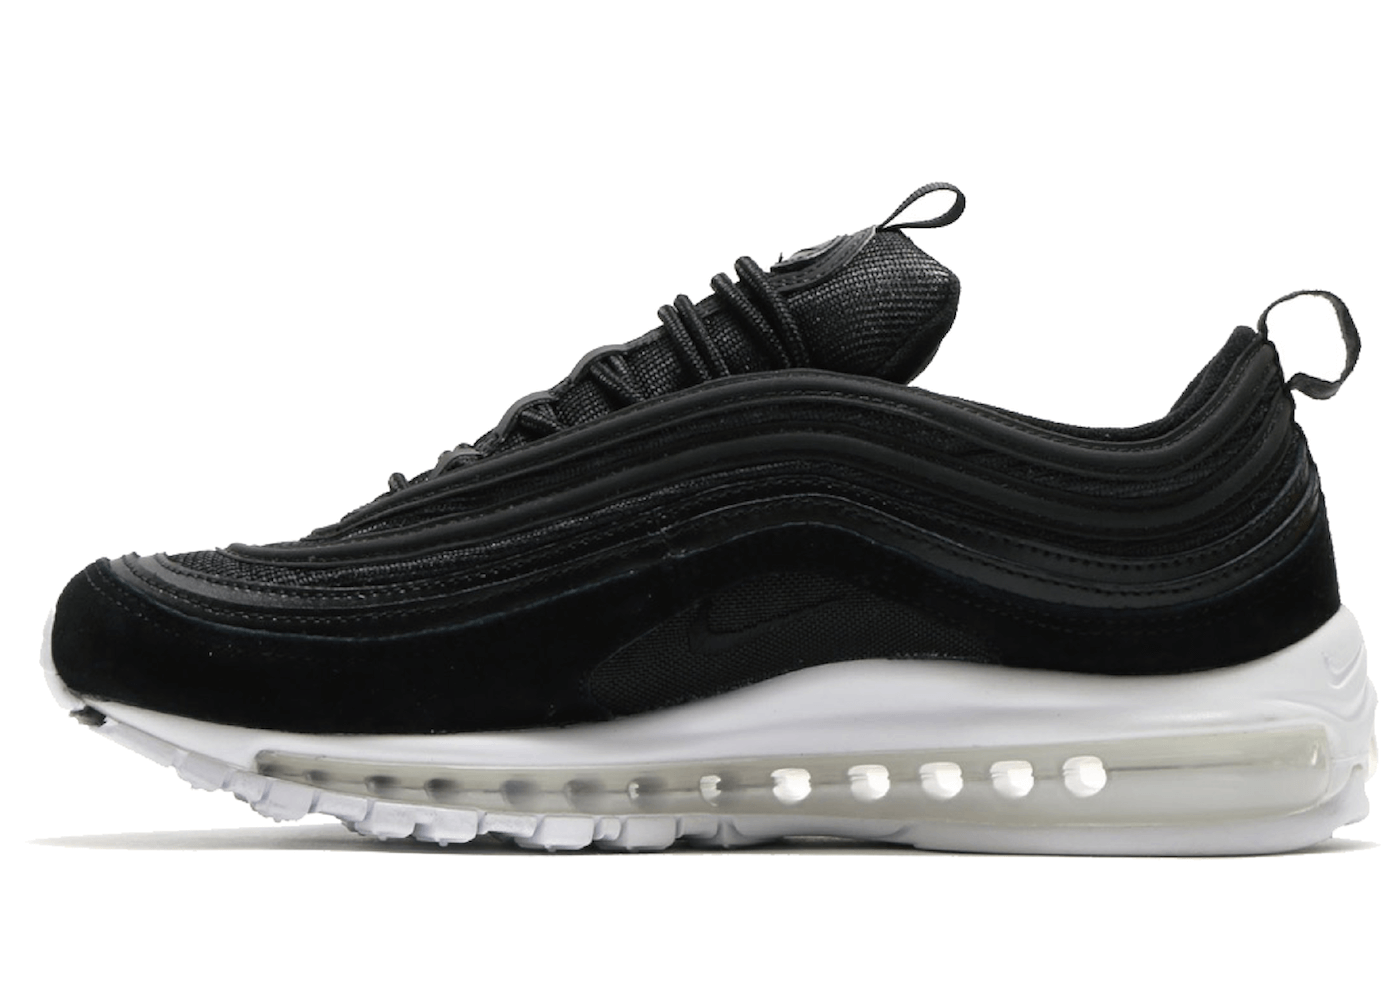 Air Max 97 PRM Black Whiteの写真